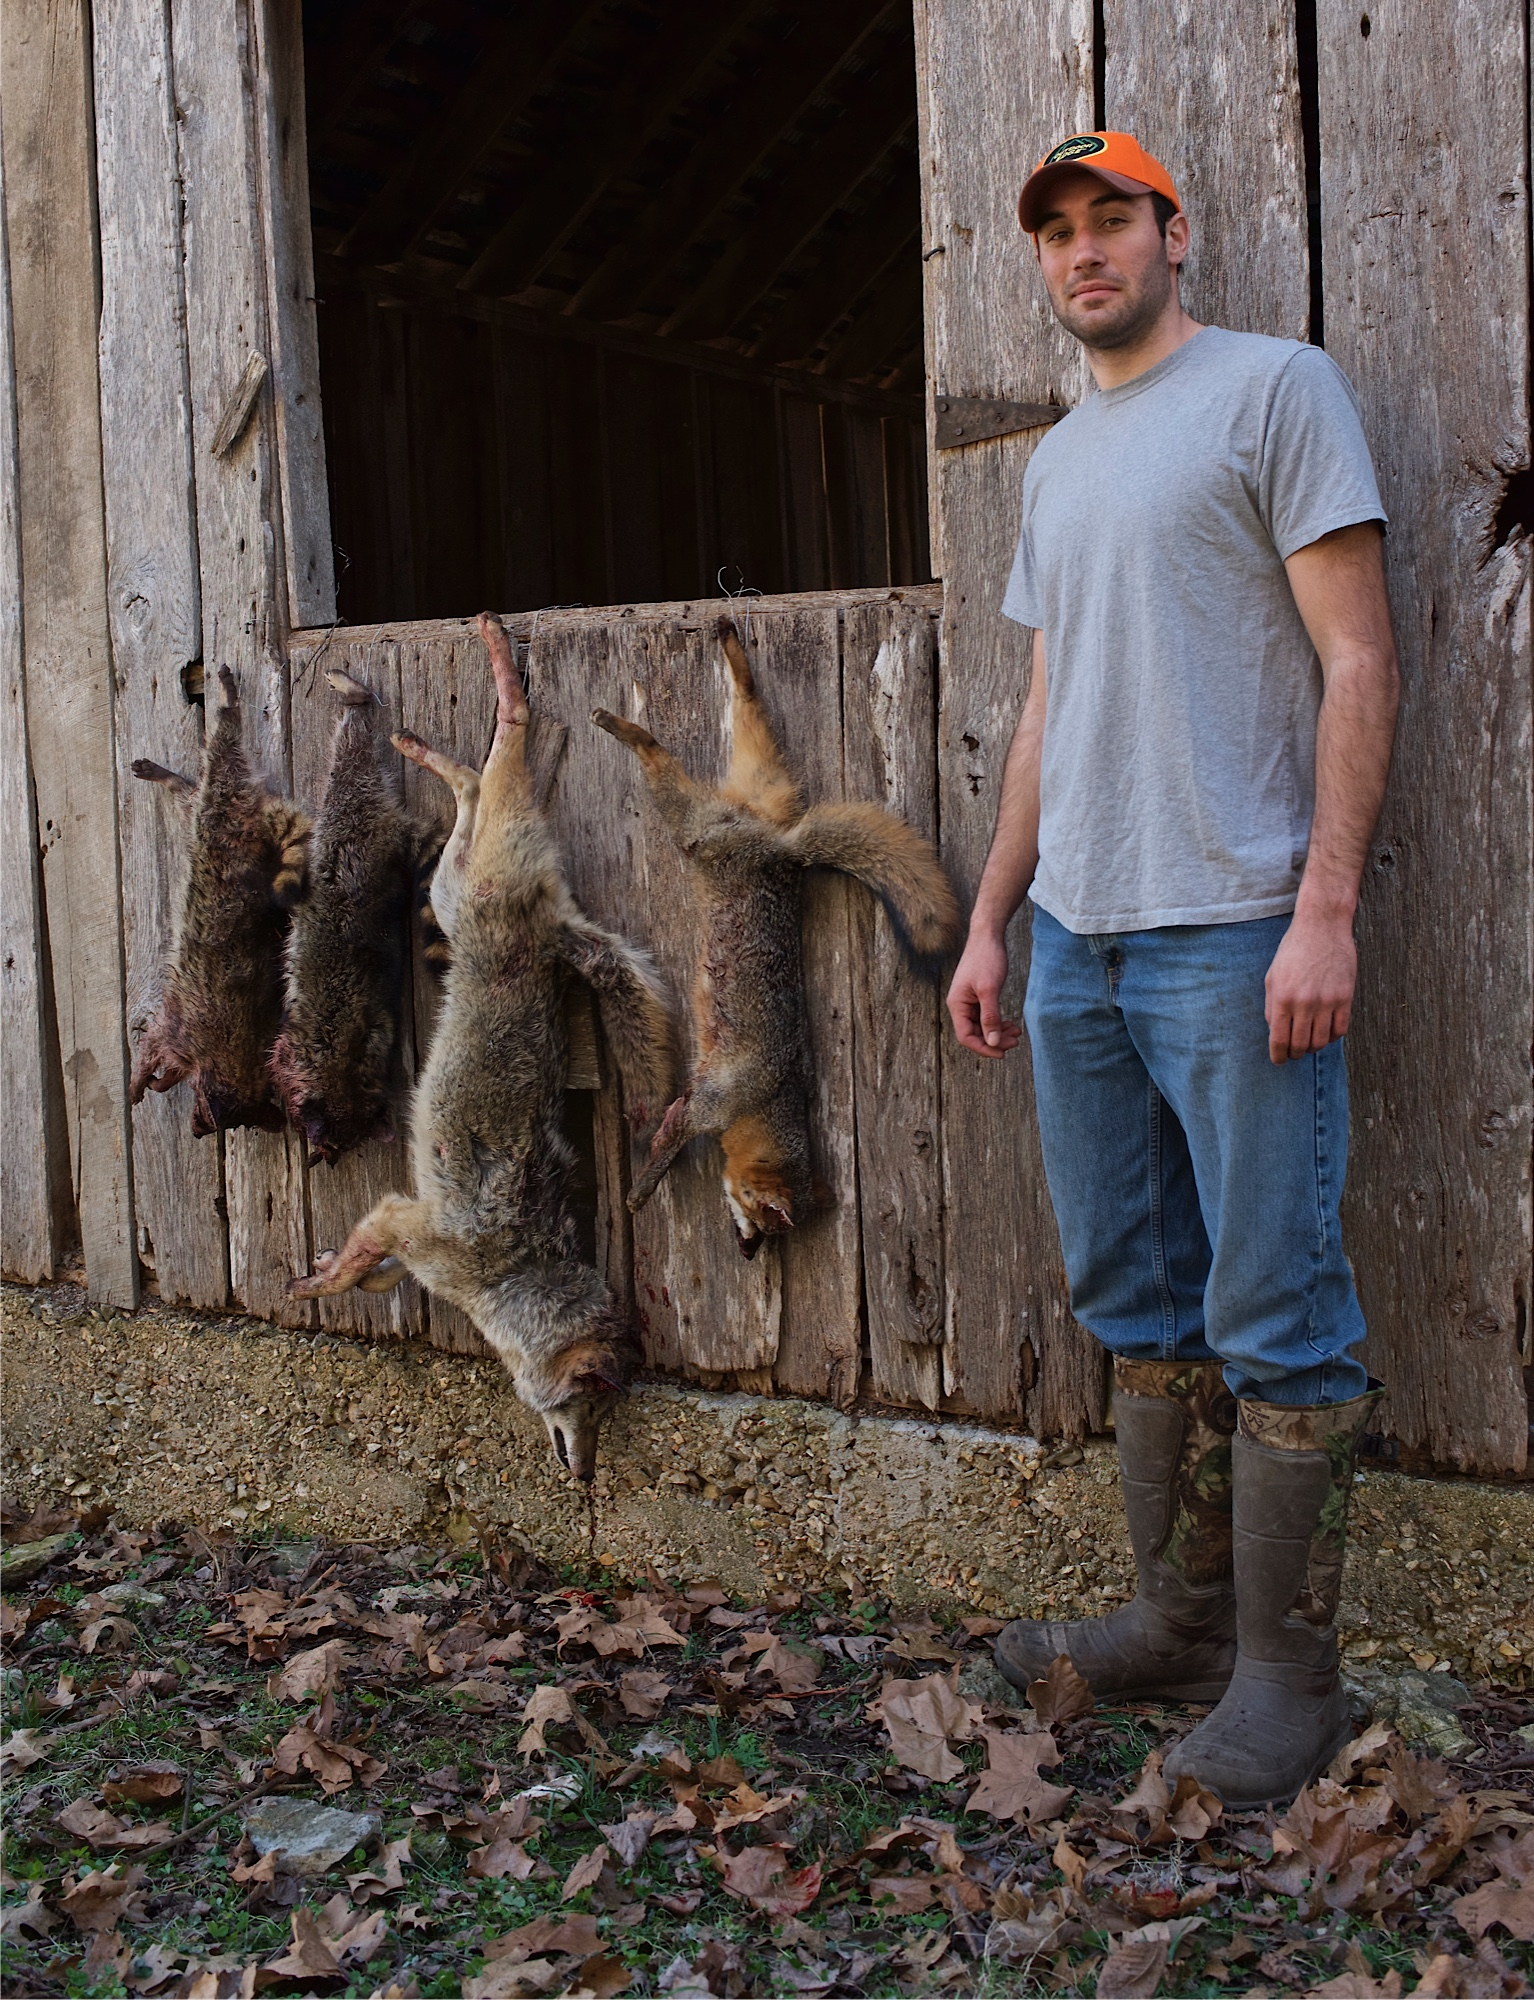 Daniel's trap line results were two raccoons, a coyote, and a fox.